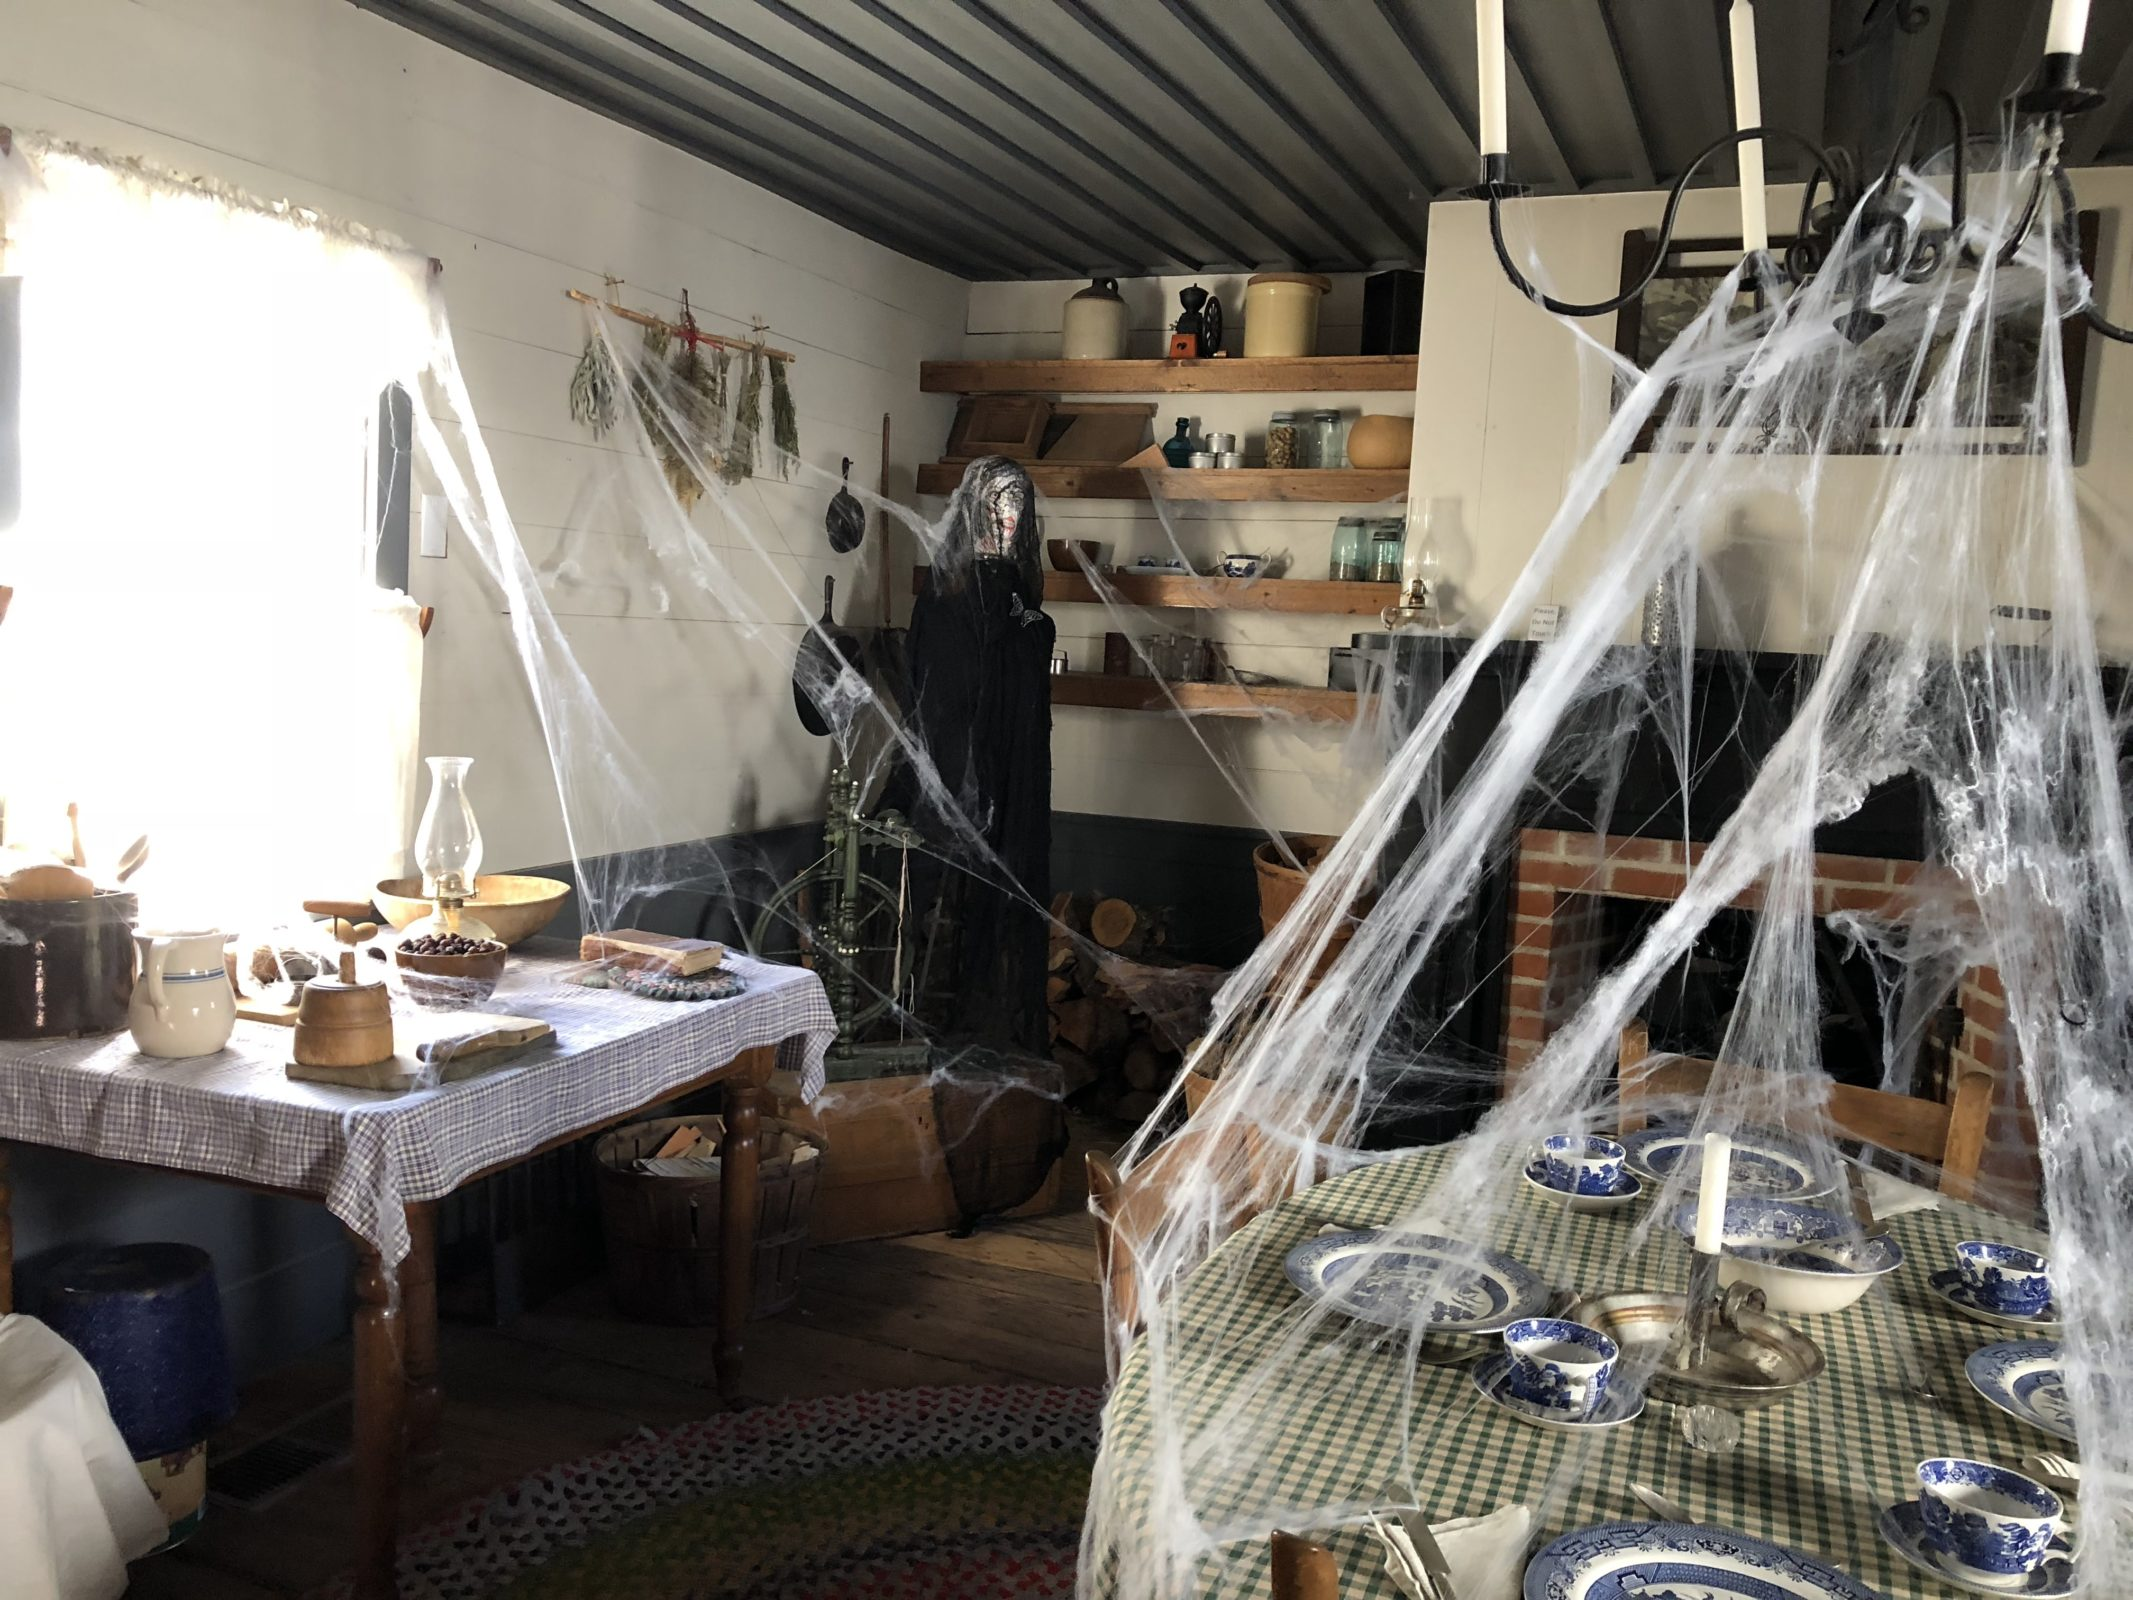 Photo of house interior with fake spider web.